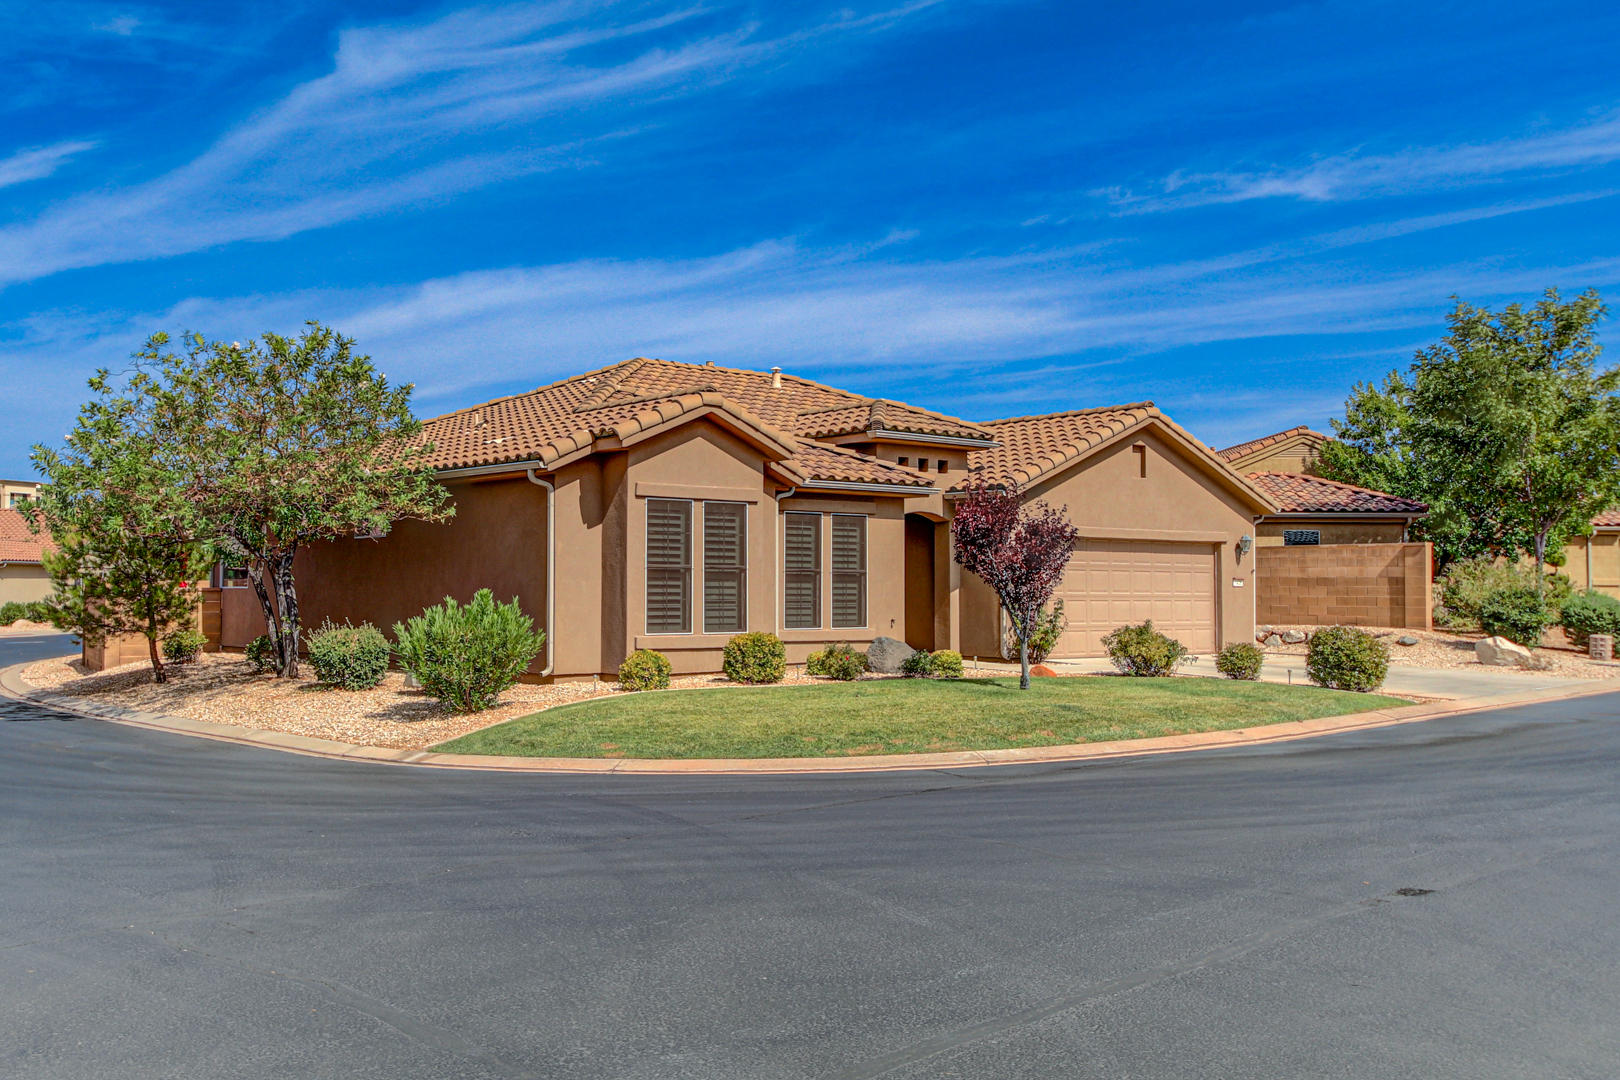 1406 Country Club Dr, St George Ut 84790